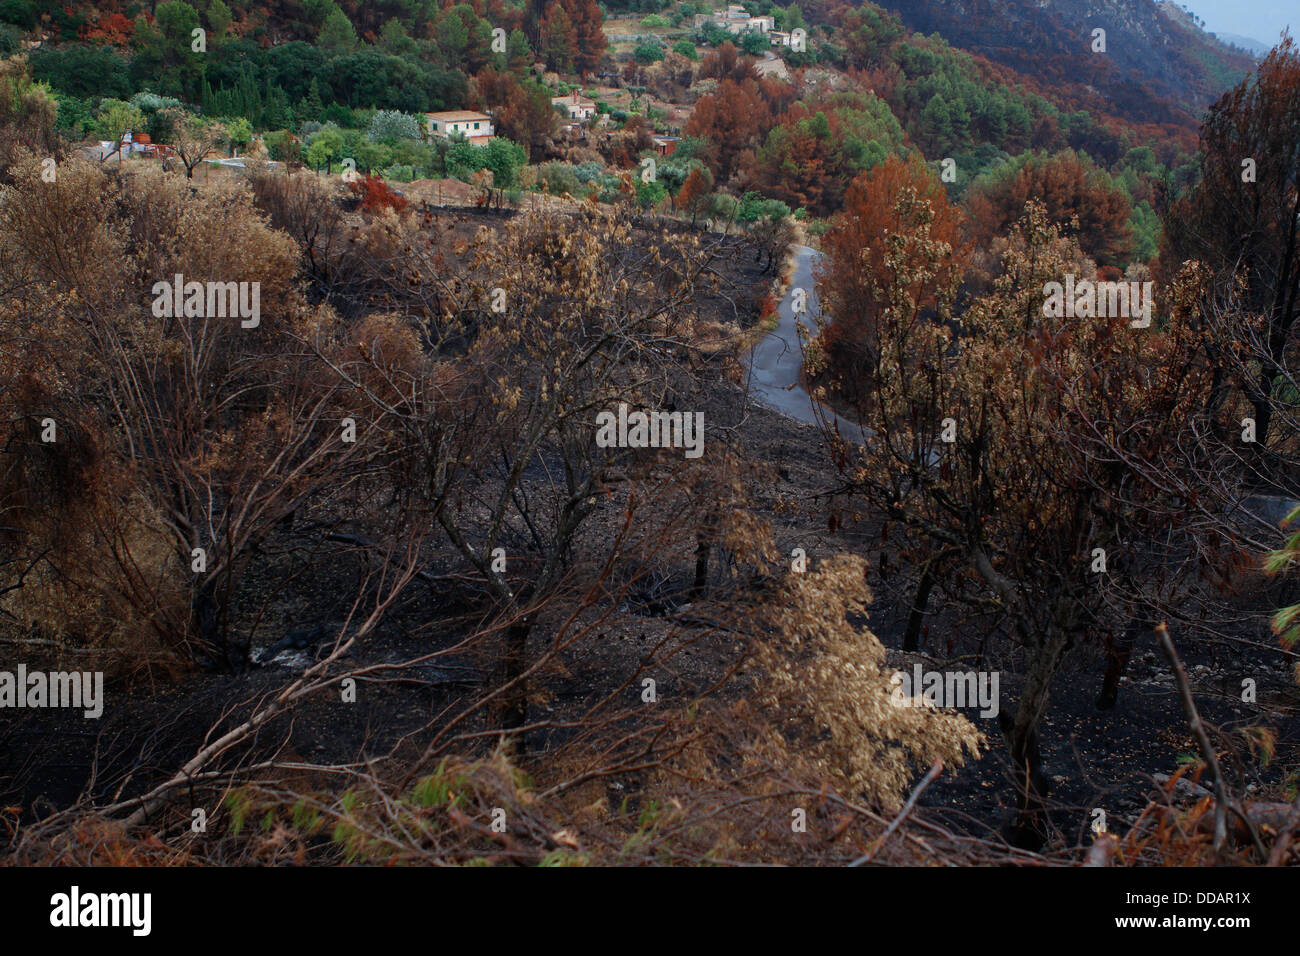 Burned area seen after a wildfire that razed more than 2300 hectares in the Spanish island of Mallorca. - Stock Image